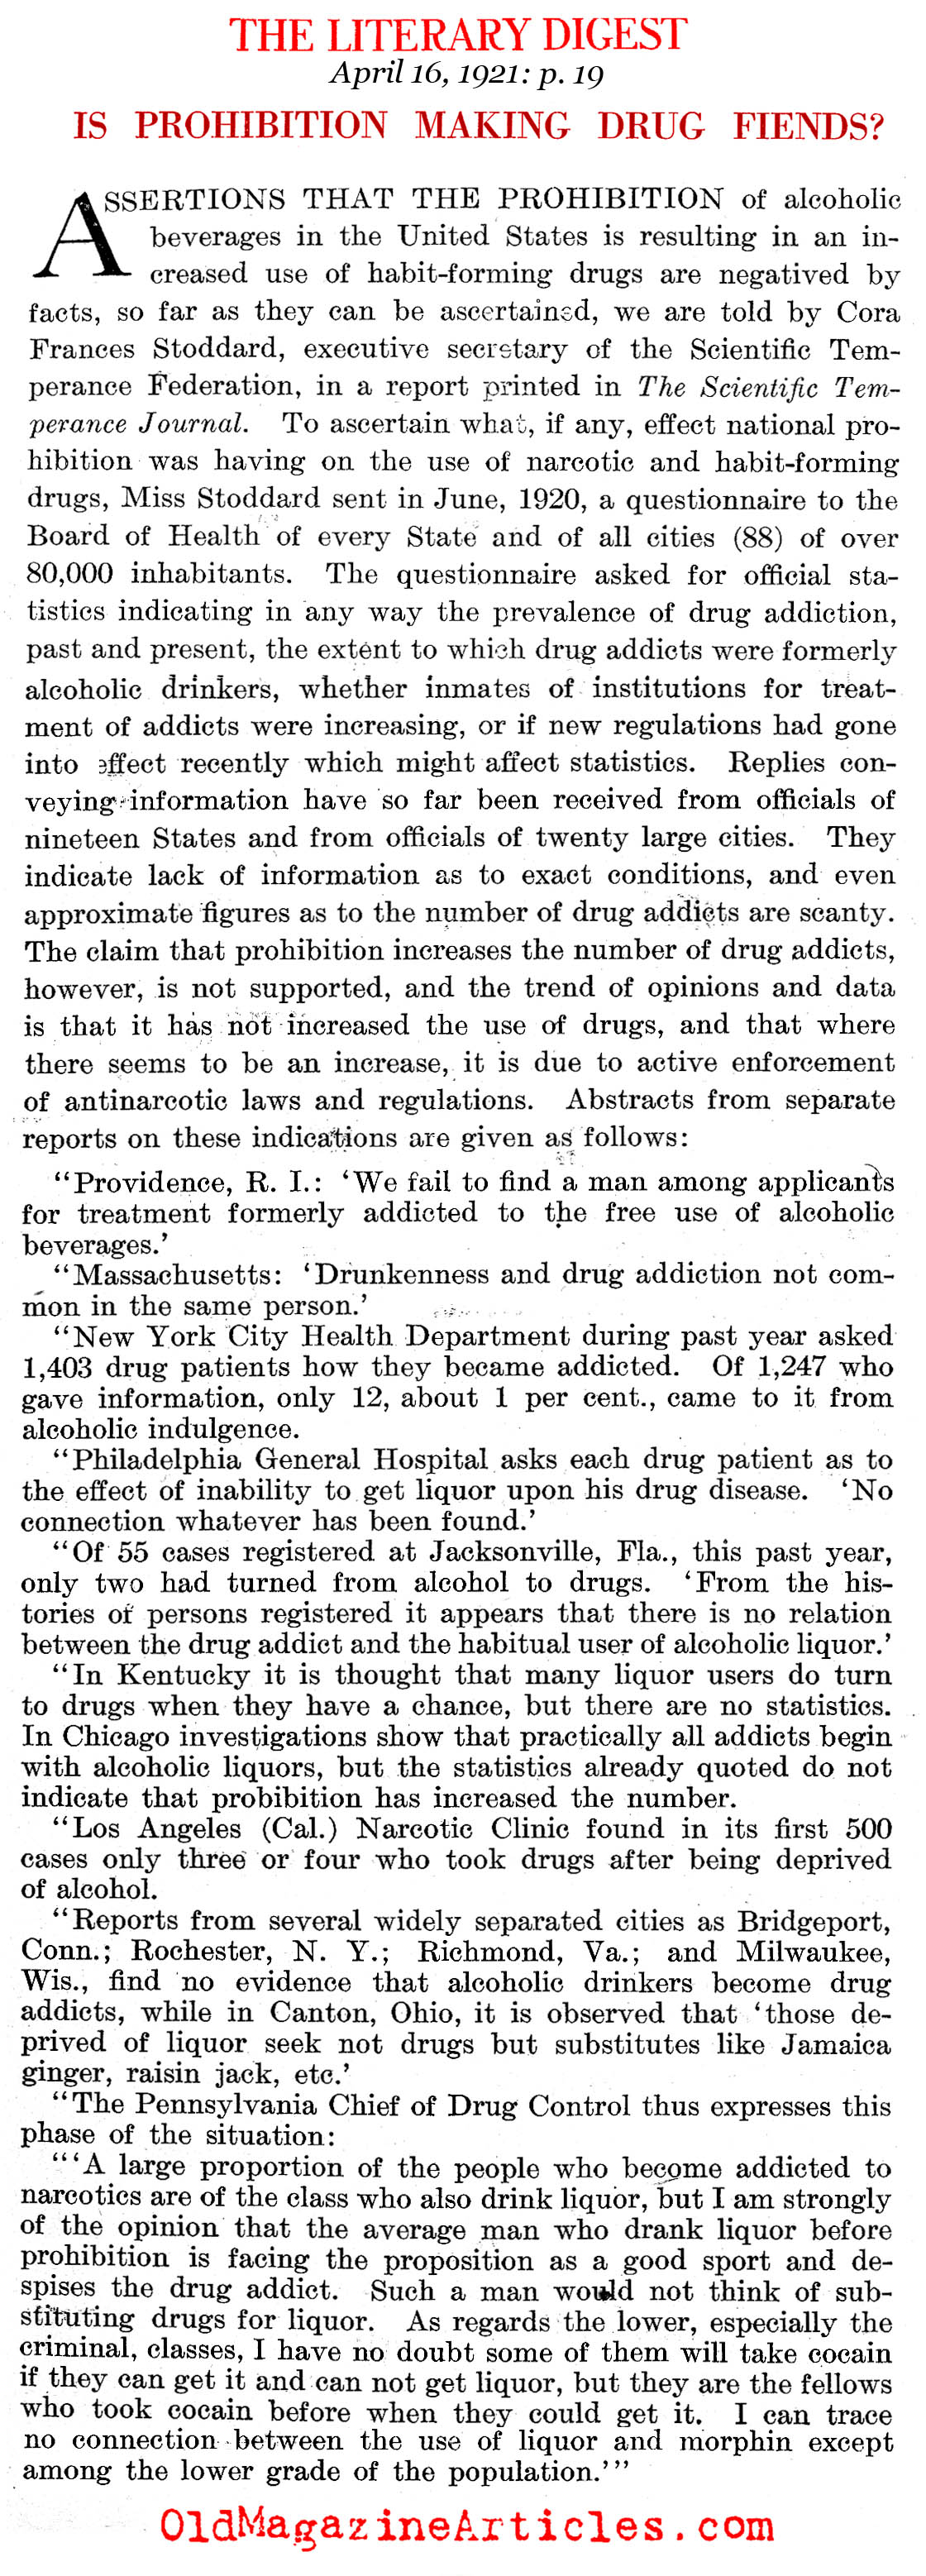 Will Prohibition Create More Drug Users? (The Literary Digest, 1922)